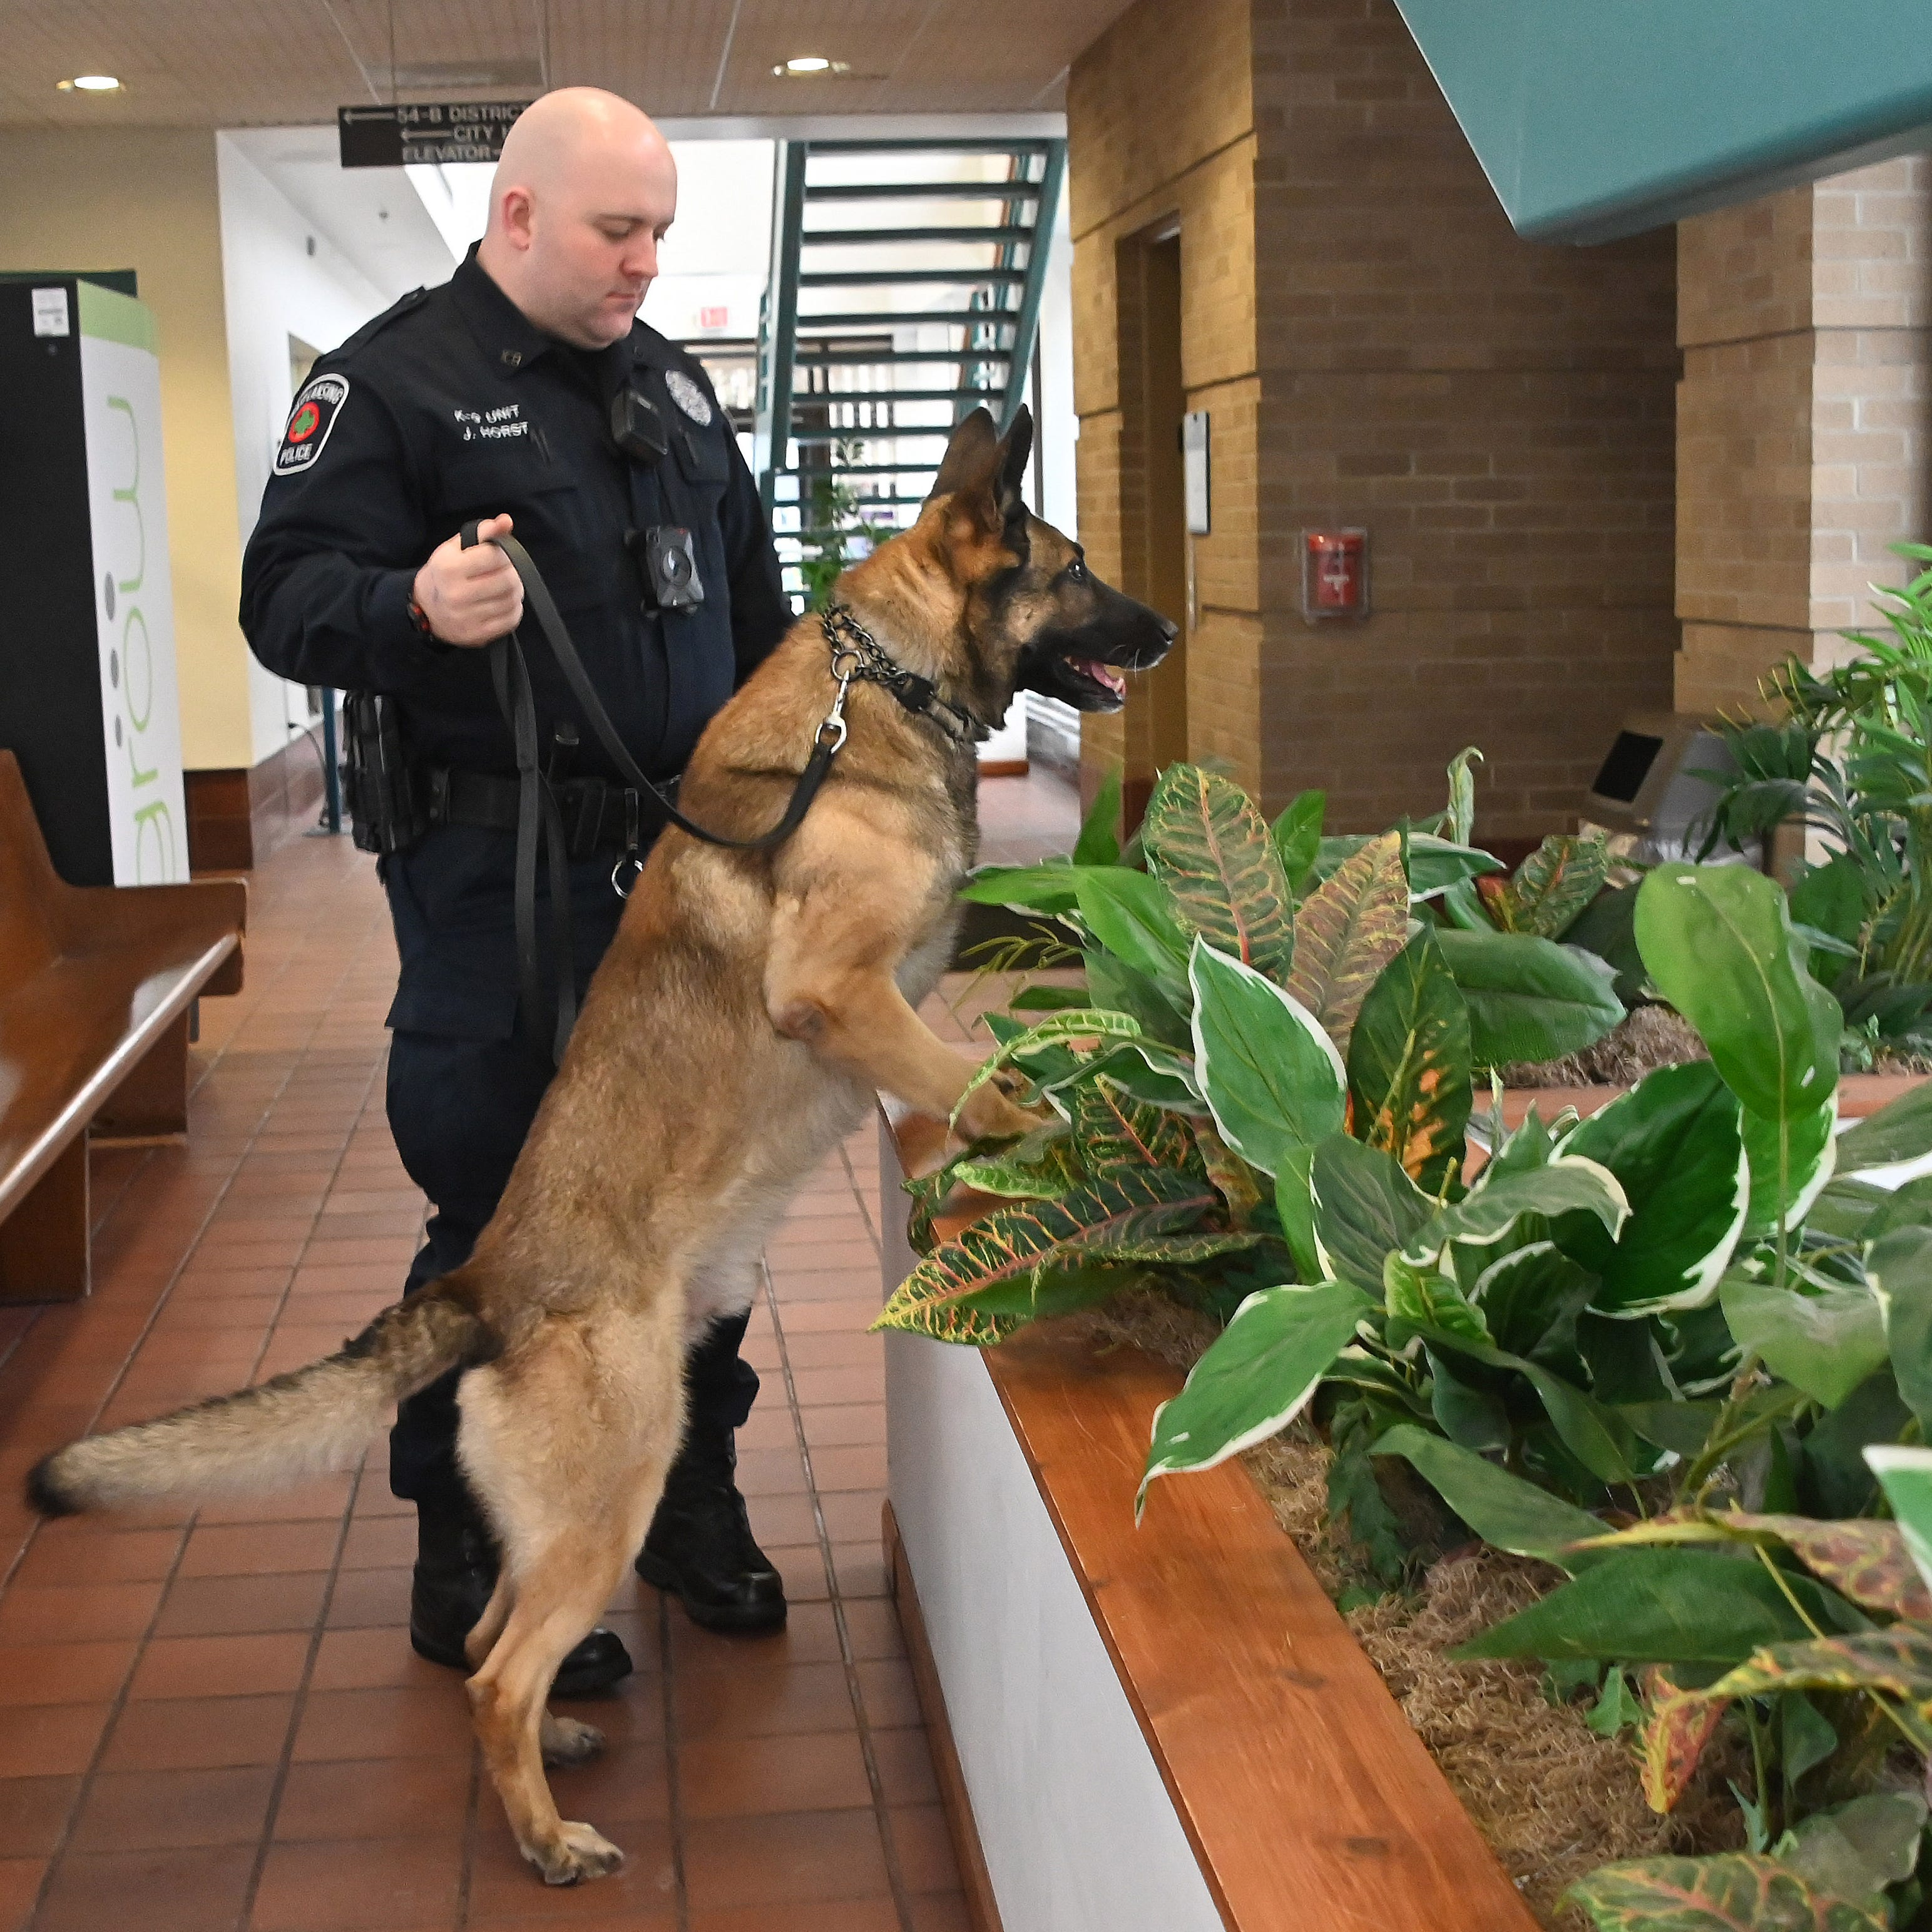 Marijuana legalization may lead to changes in police dog training